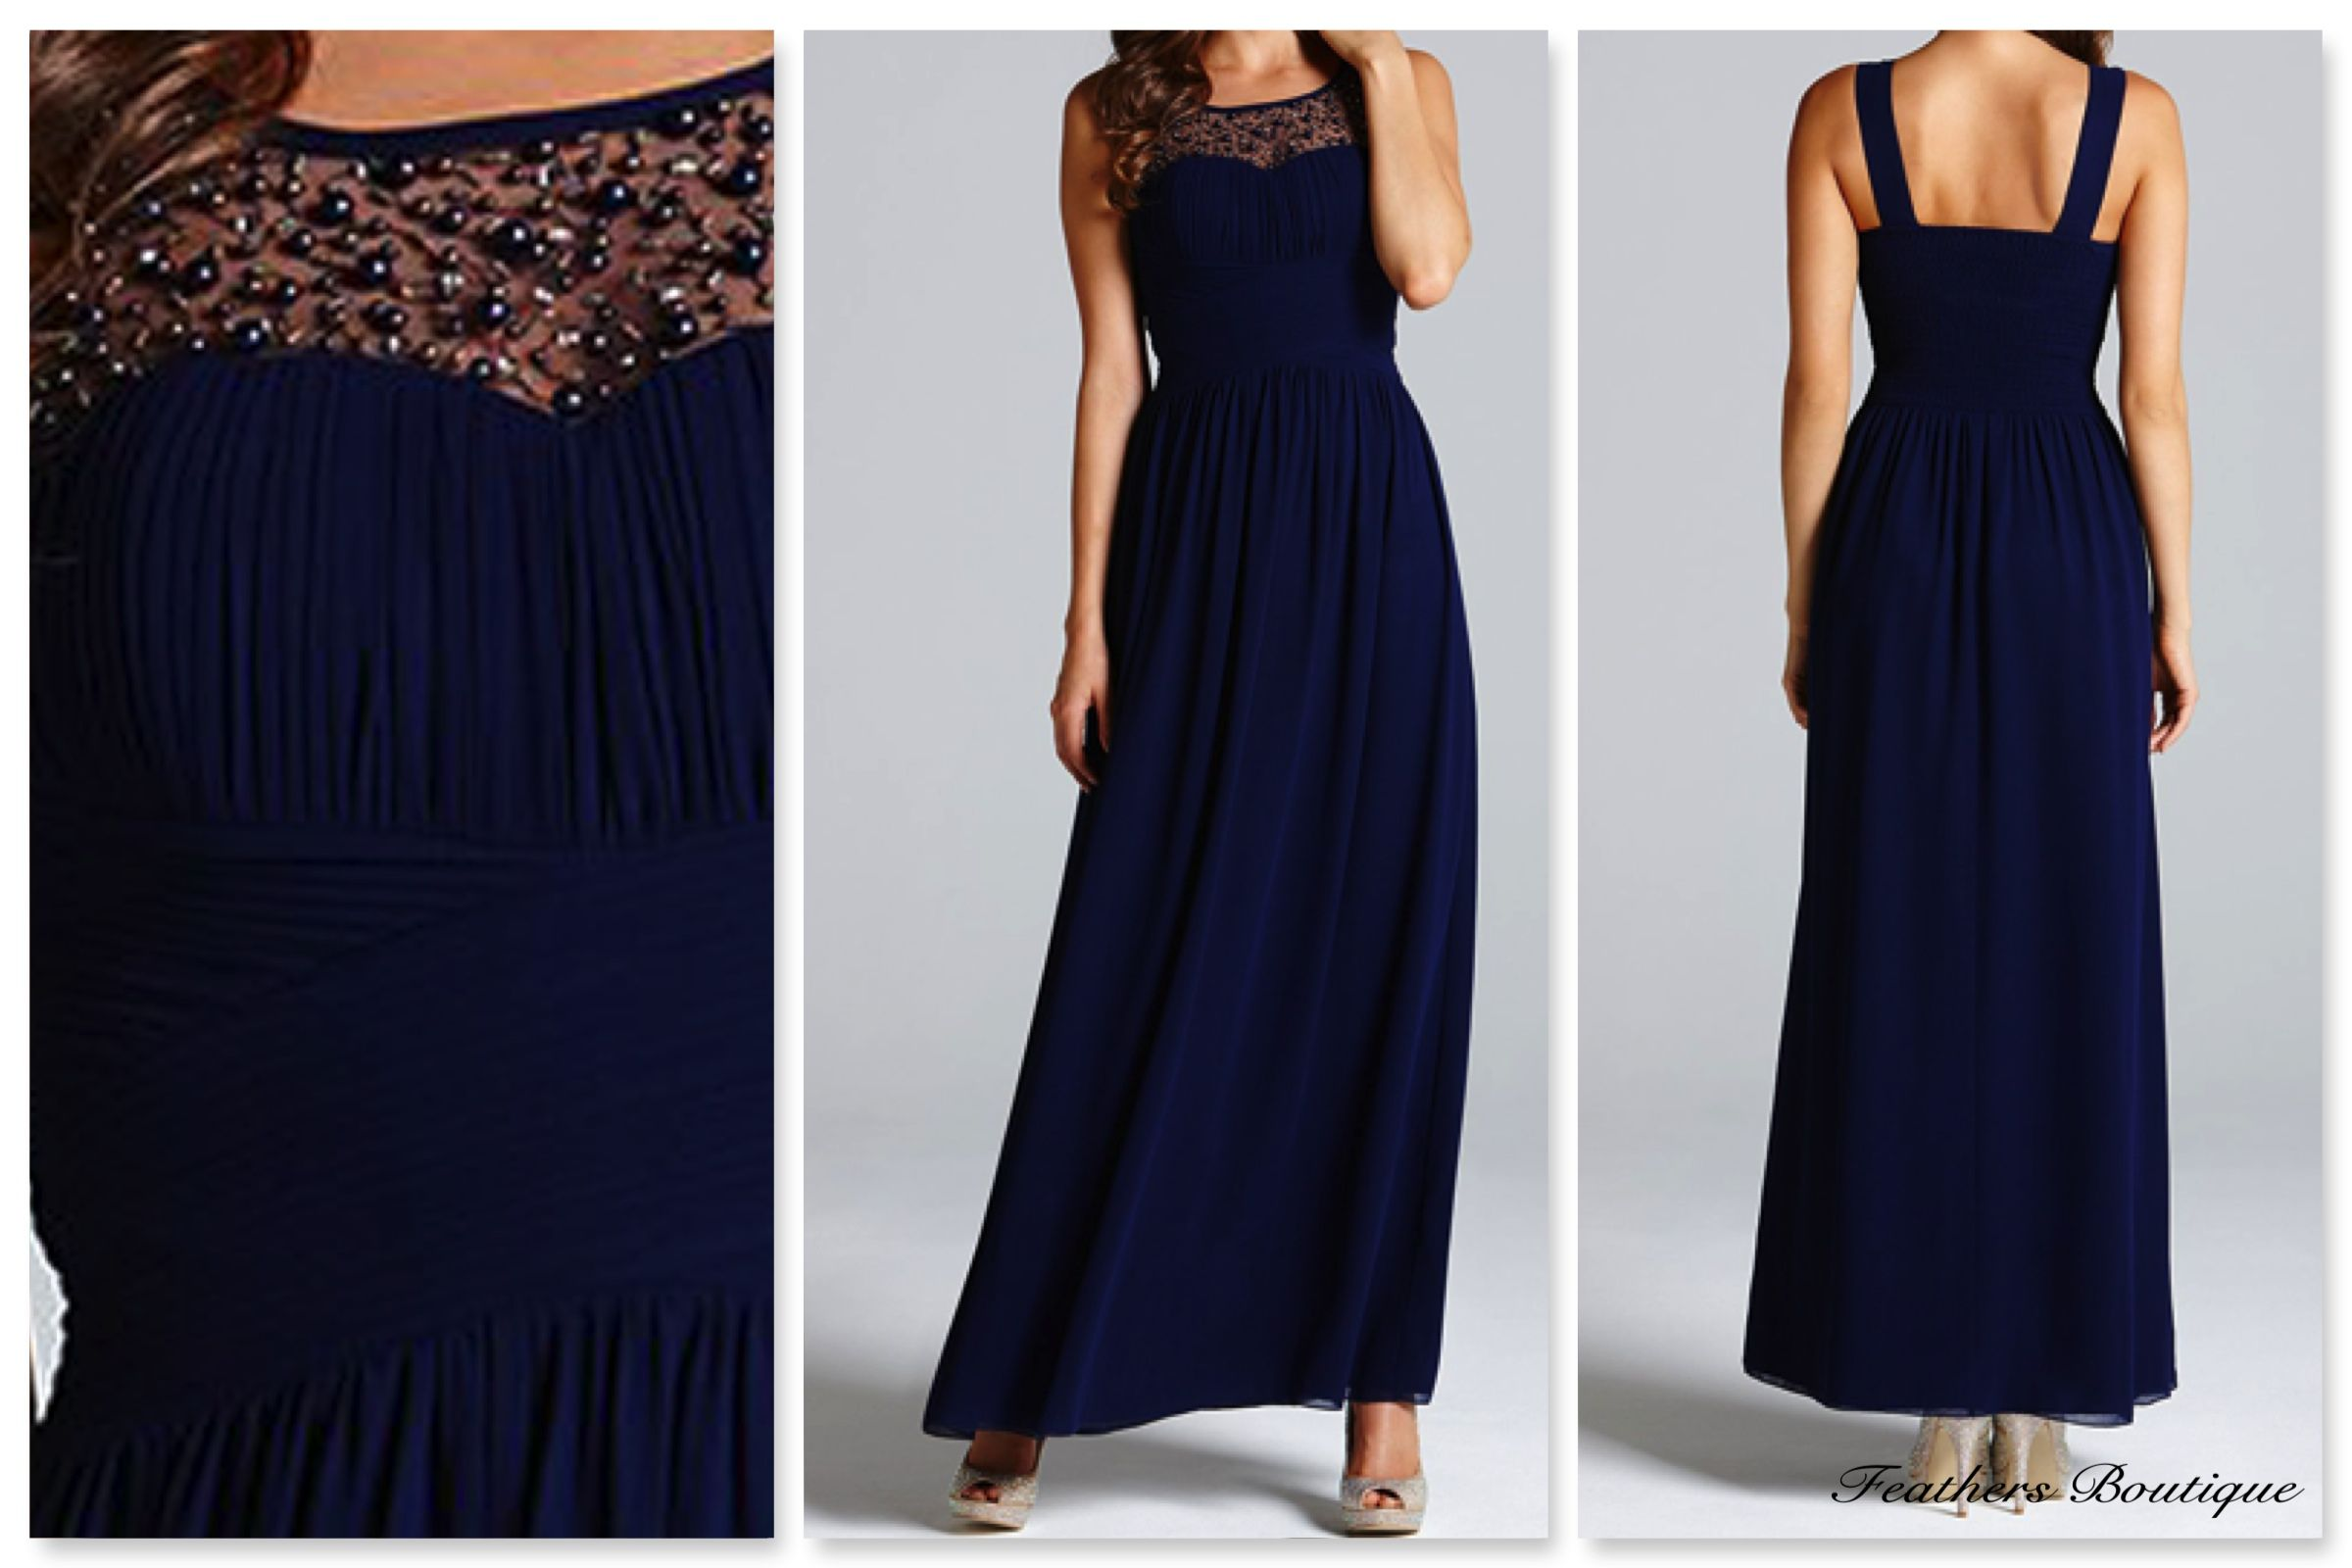 Little Mistress Embellished Detail Maxi Dress in Navy (FB986) Sizes 8,10,12,14 £70  #newin #feathersboutique #liverpool #love #newarrivals #newseason #clothes #clothing #style #stylist #fashion #fashionista #holidays #blogger #bloggers #blog #fblogger #picoftheday #photooftheday #ootd #kimono #dress #maxidress